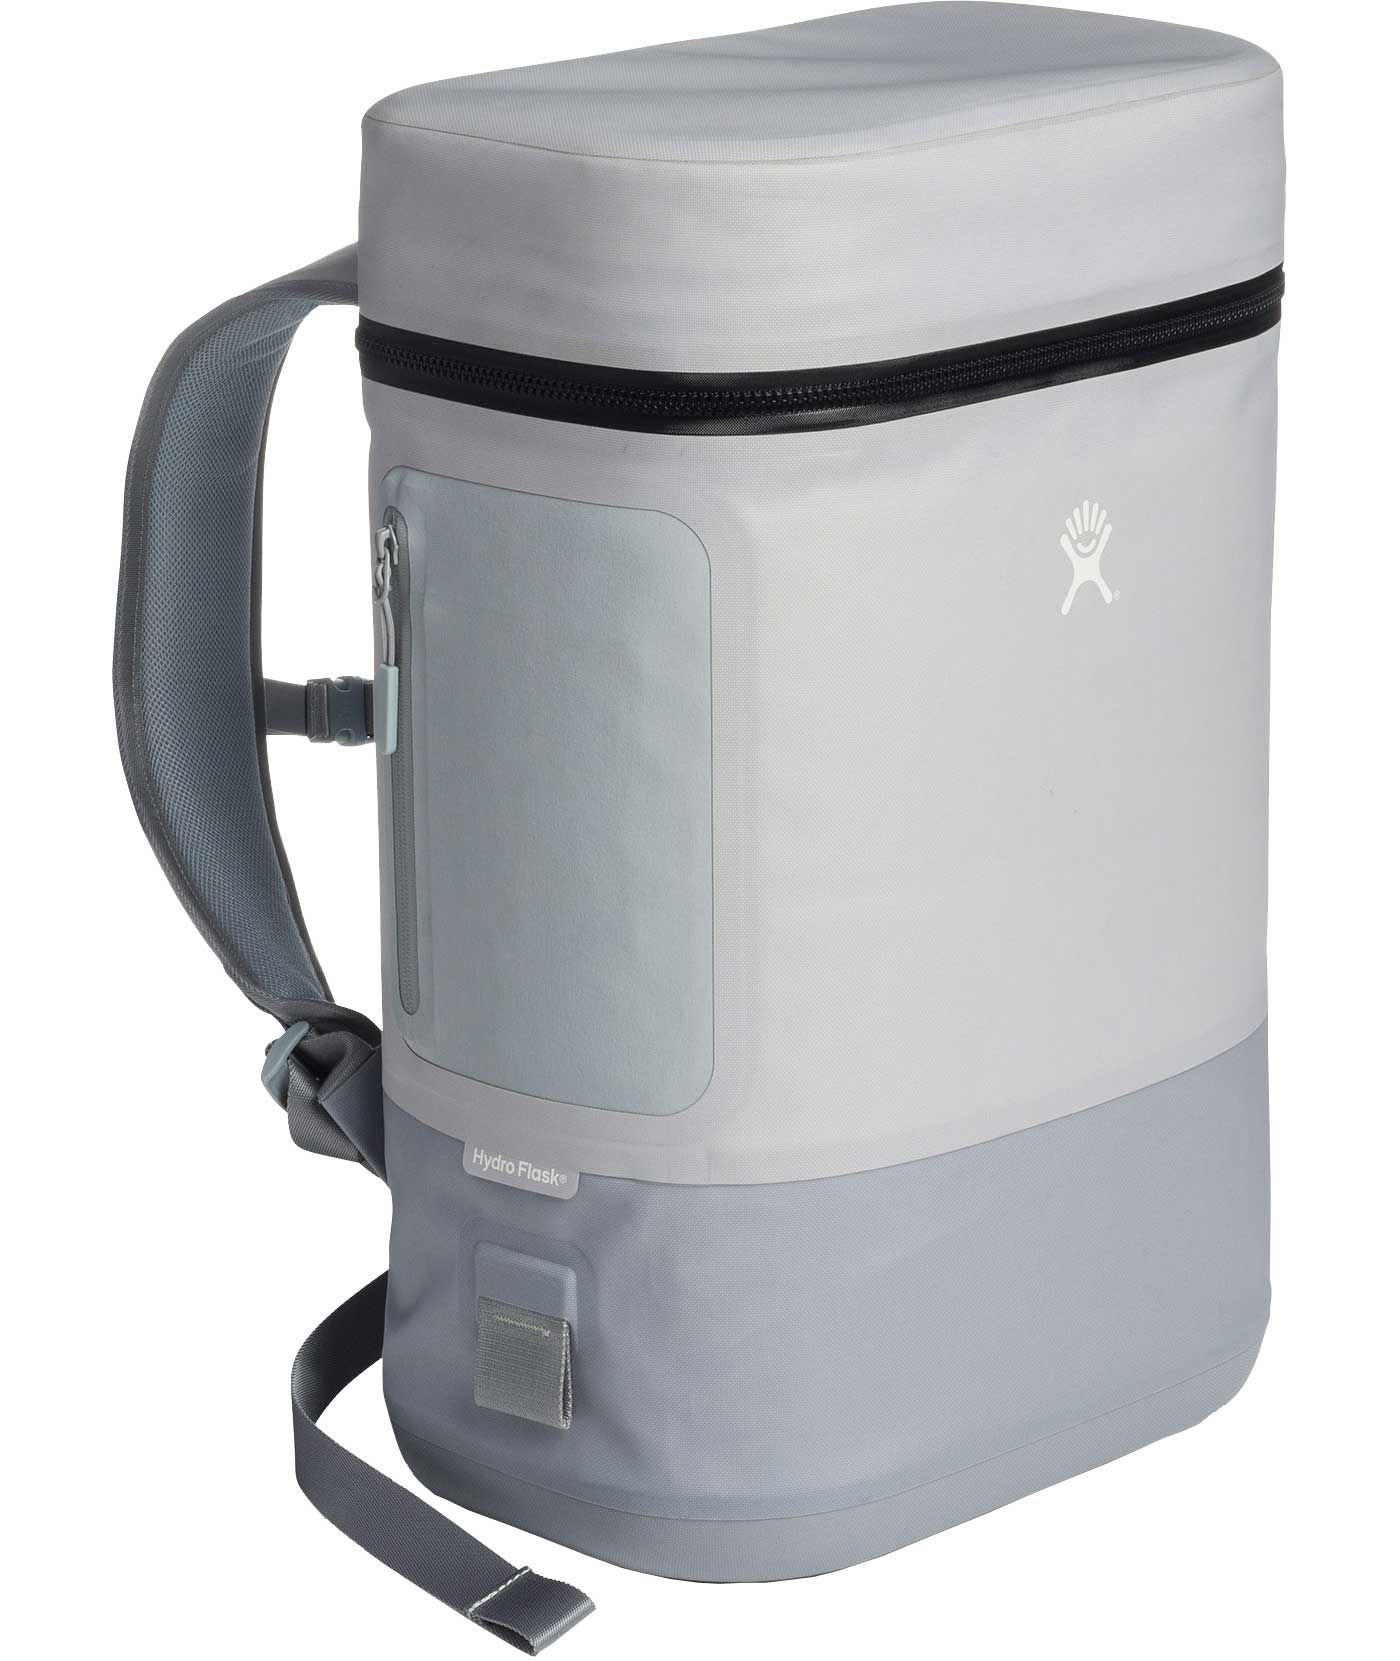 Hydro Flask Unbound Series 22L Soft Cooler Pack